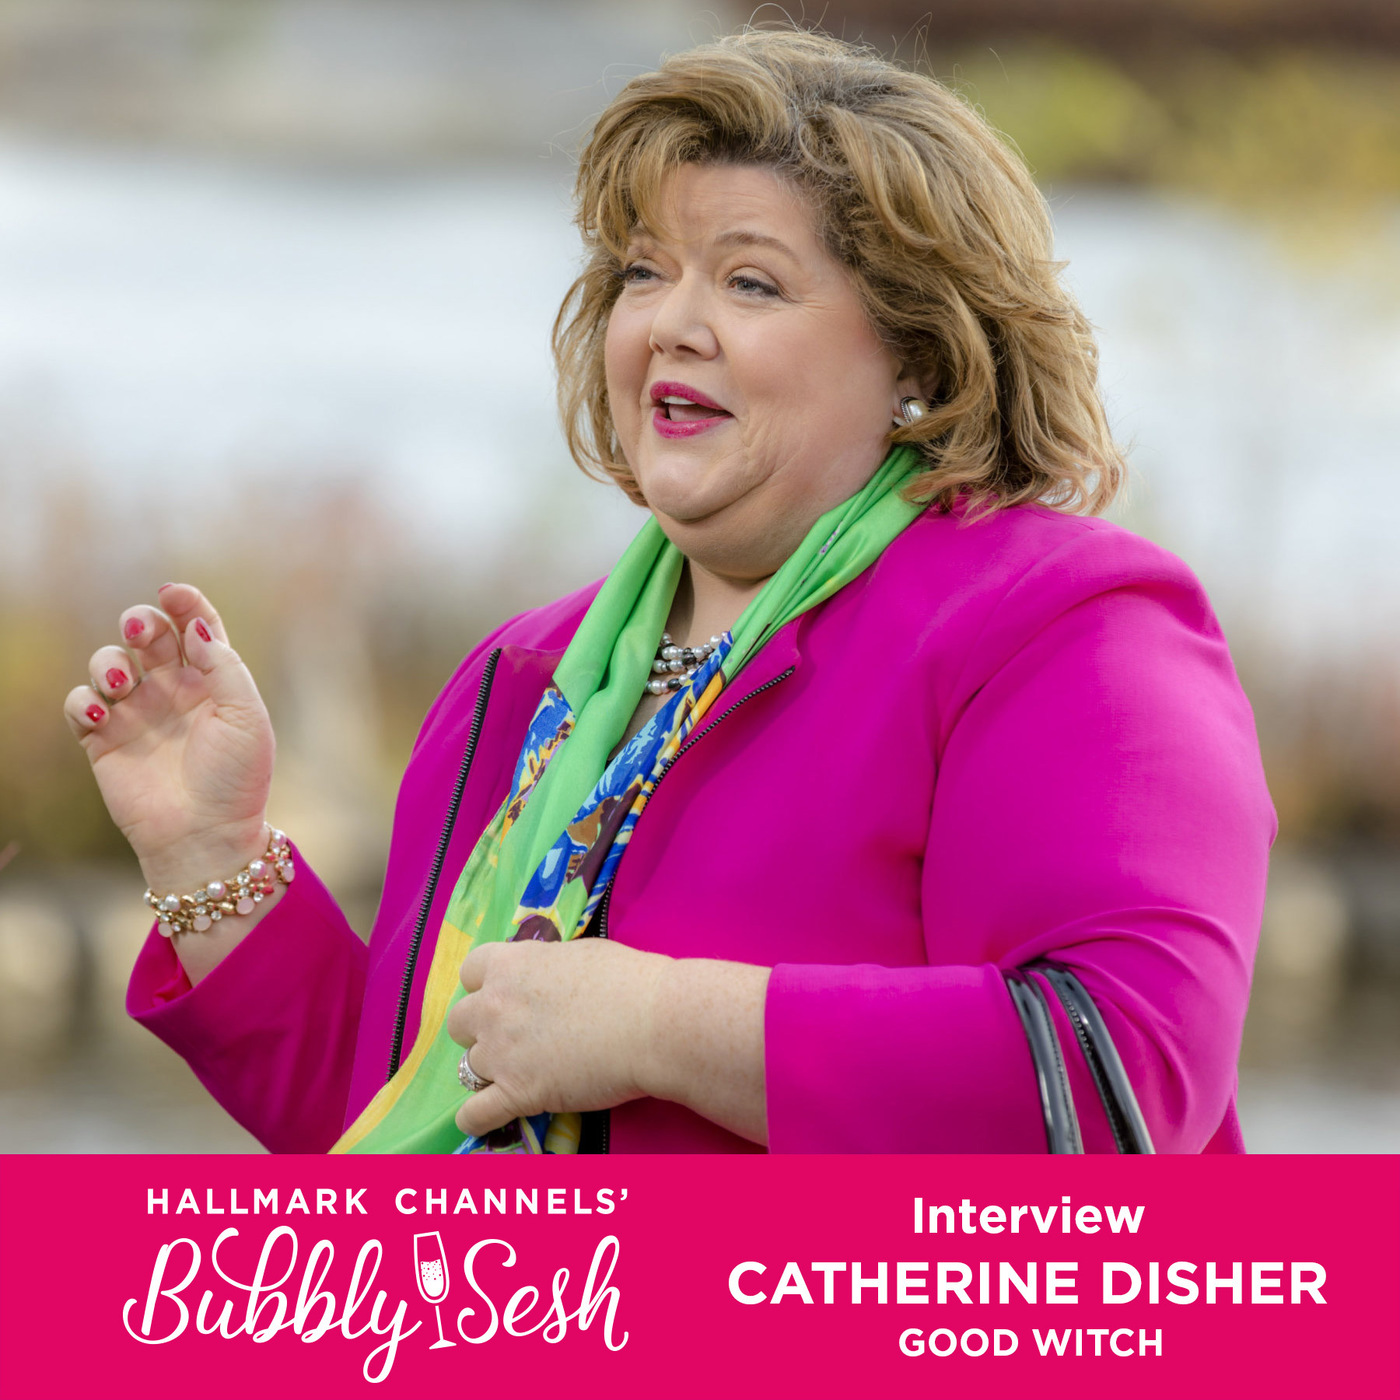 Catherine Disher Interview: Good Witch